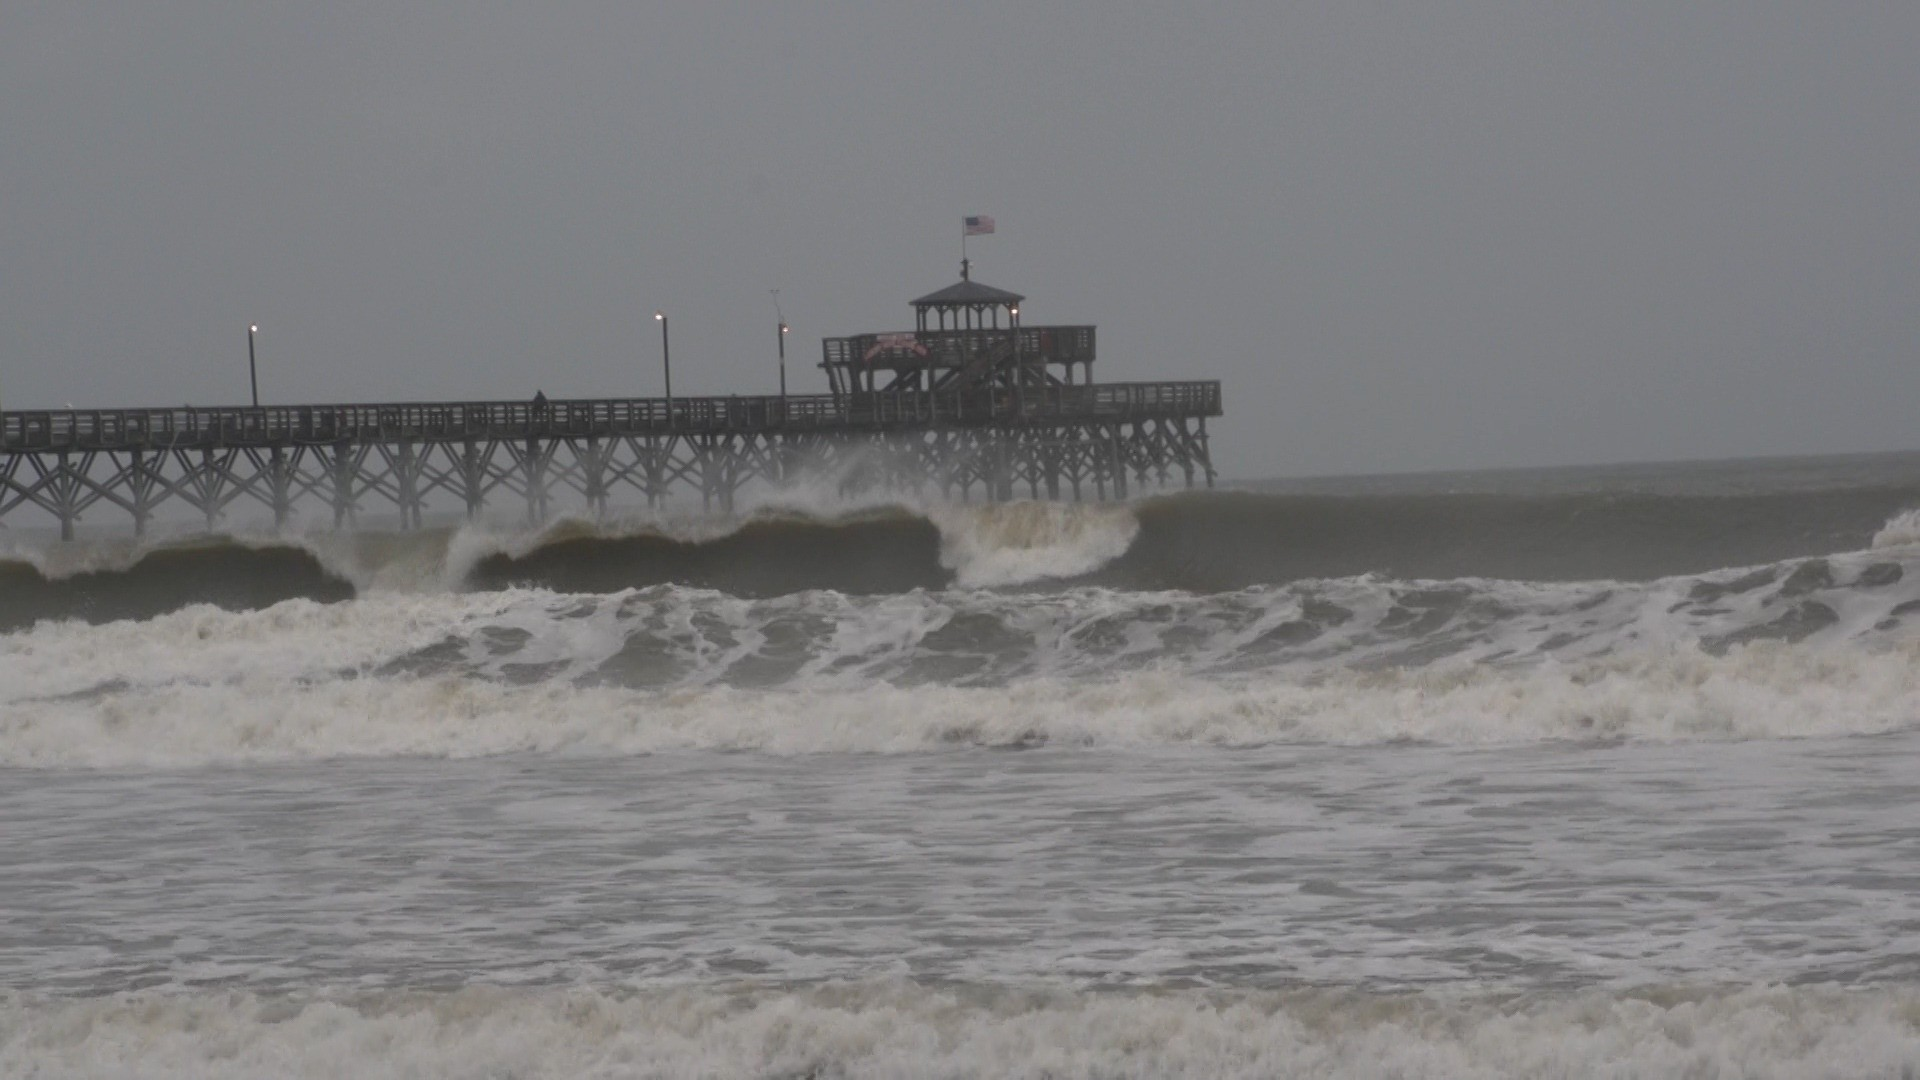 BuckCumbo's photo of Cherry Grove Pier